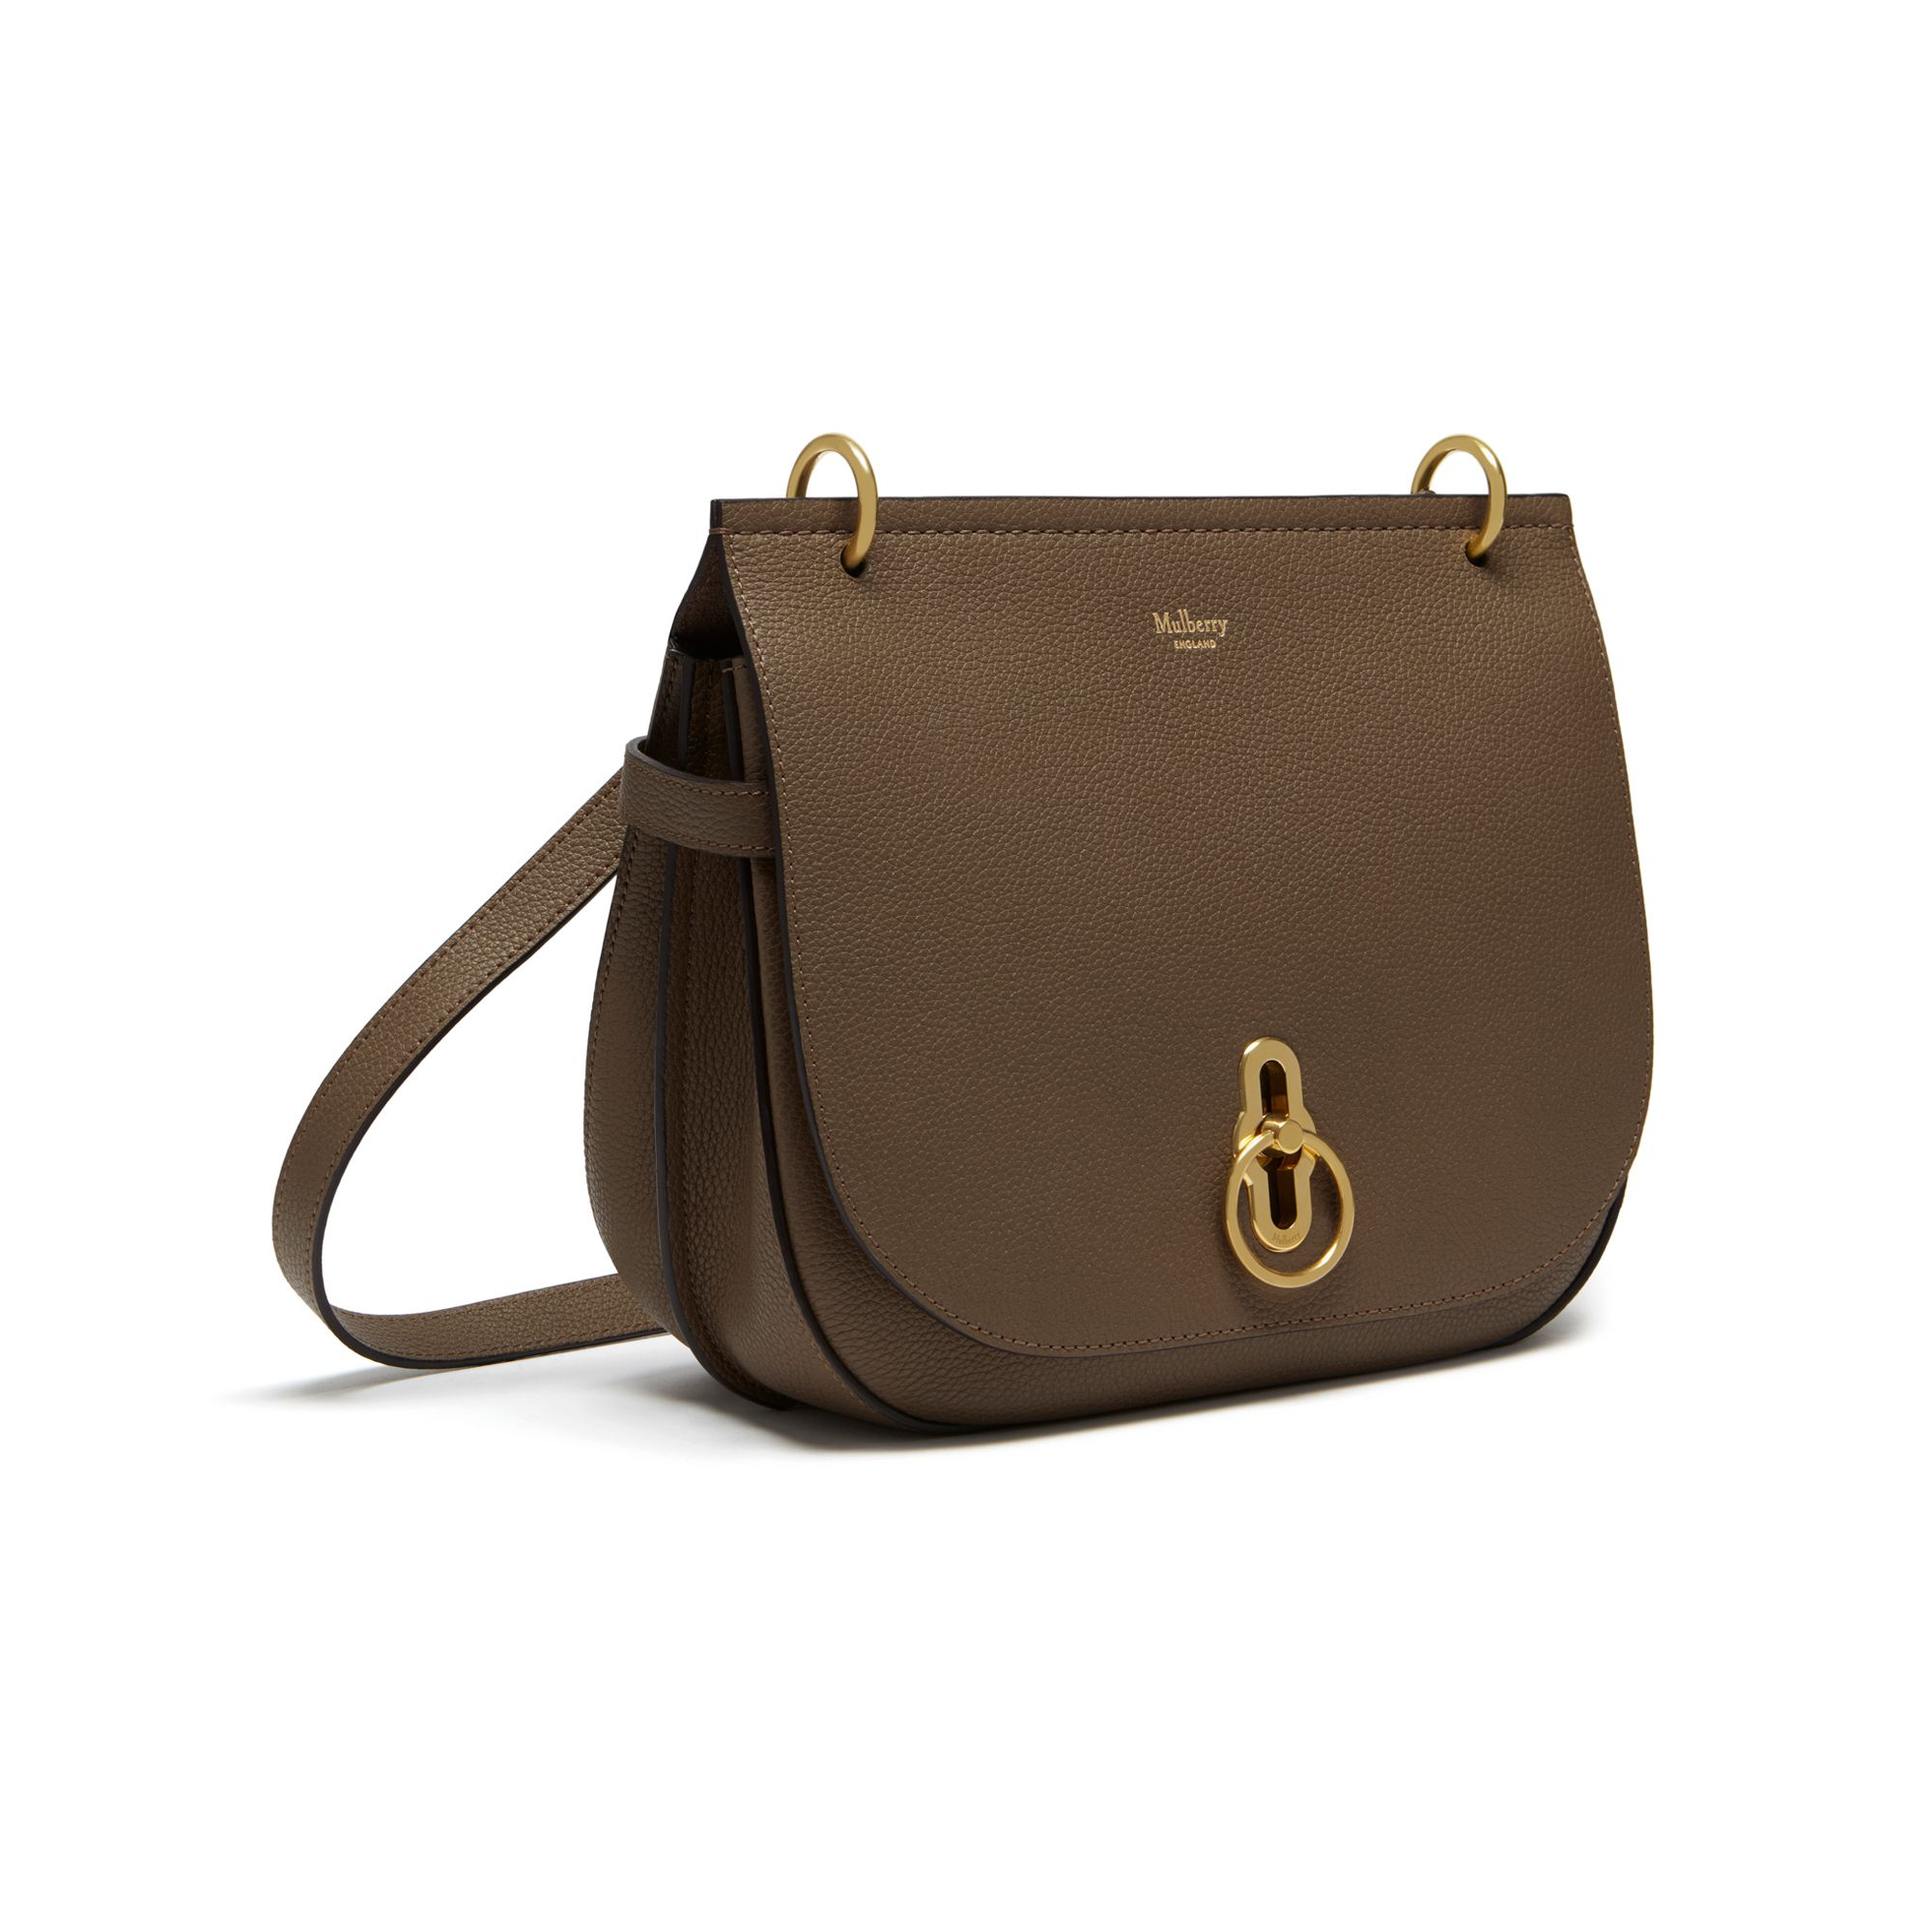 8e702d7a92 Shop the Amberley Satchel in Clay Small Classic Grain Leather at Mulberry.com.  Inspired